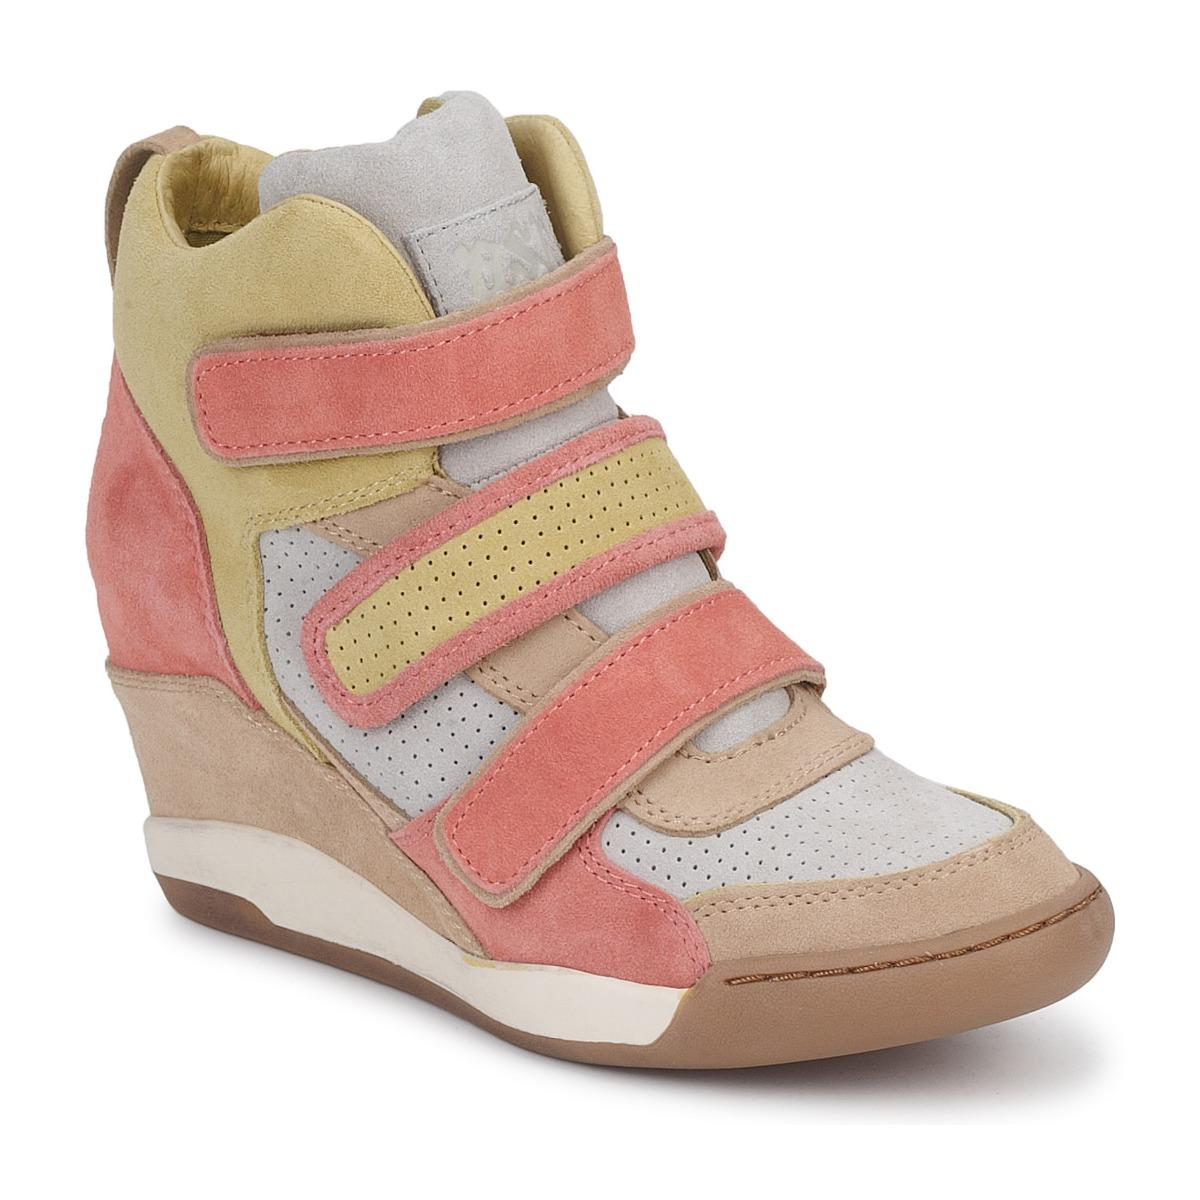 Ash Leather Alex Women's Shoes (high-top Trainers) In Orange